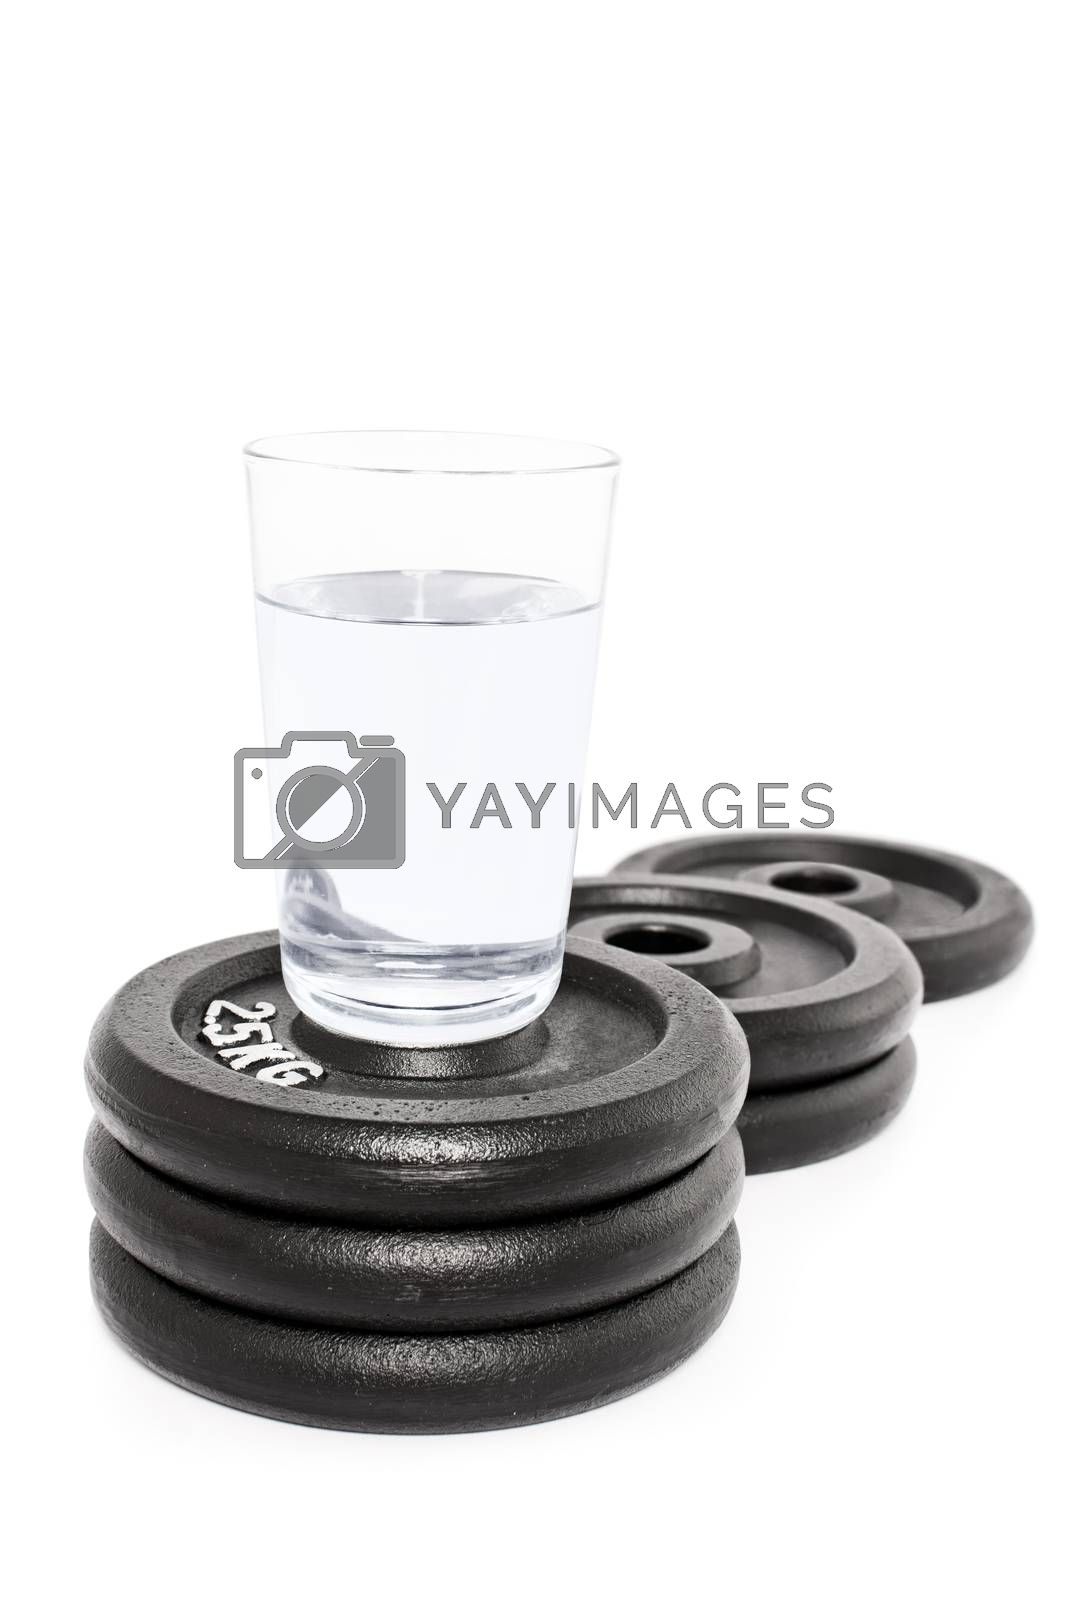 Glass of water put on a podium of weight plates, isolated on white background.